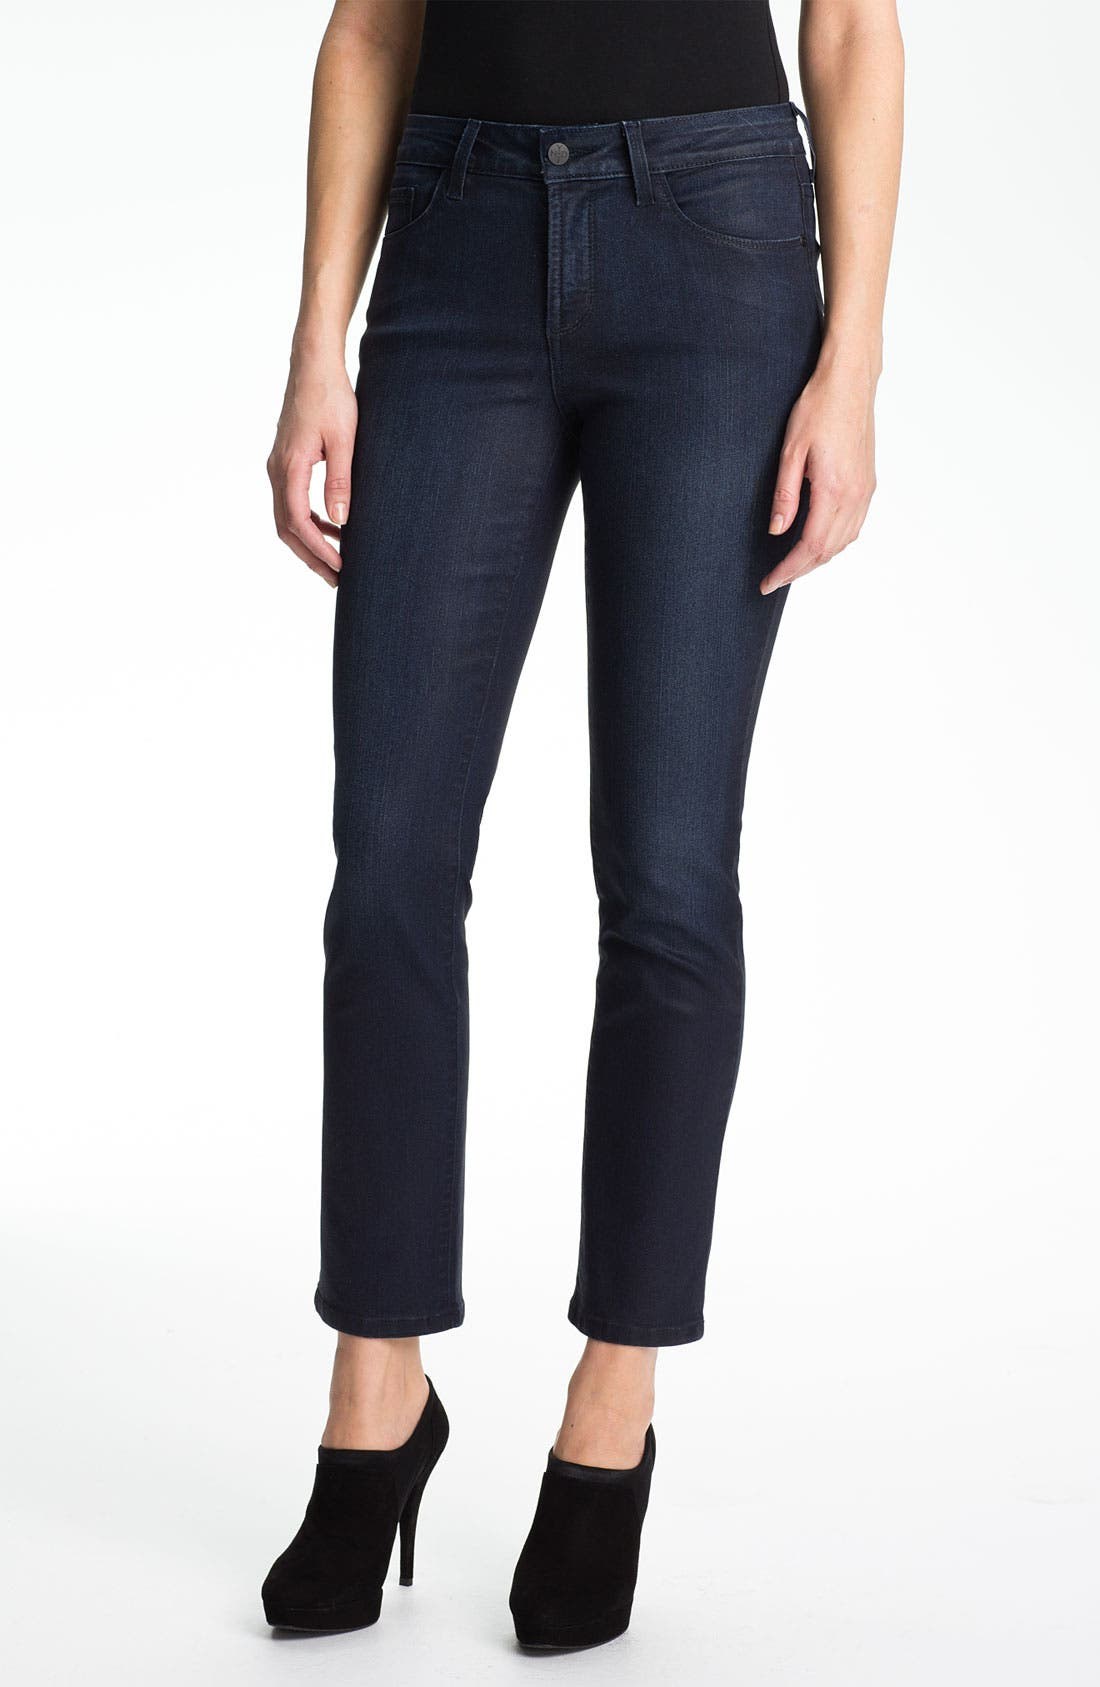 Alternate Image 1 Selected - NYDJ 'Sheri' Skinny Jeans (Petite)